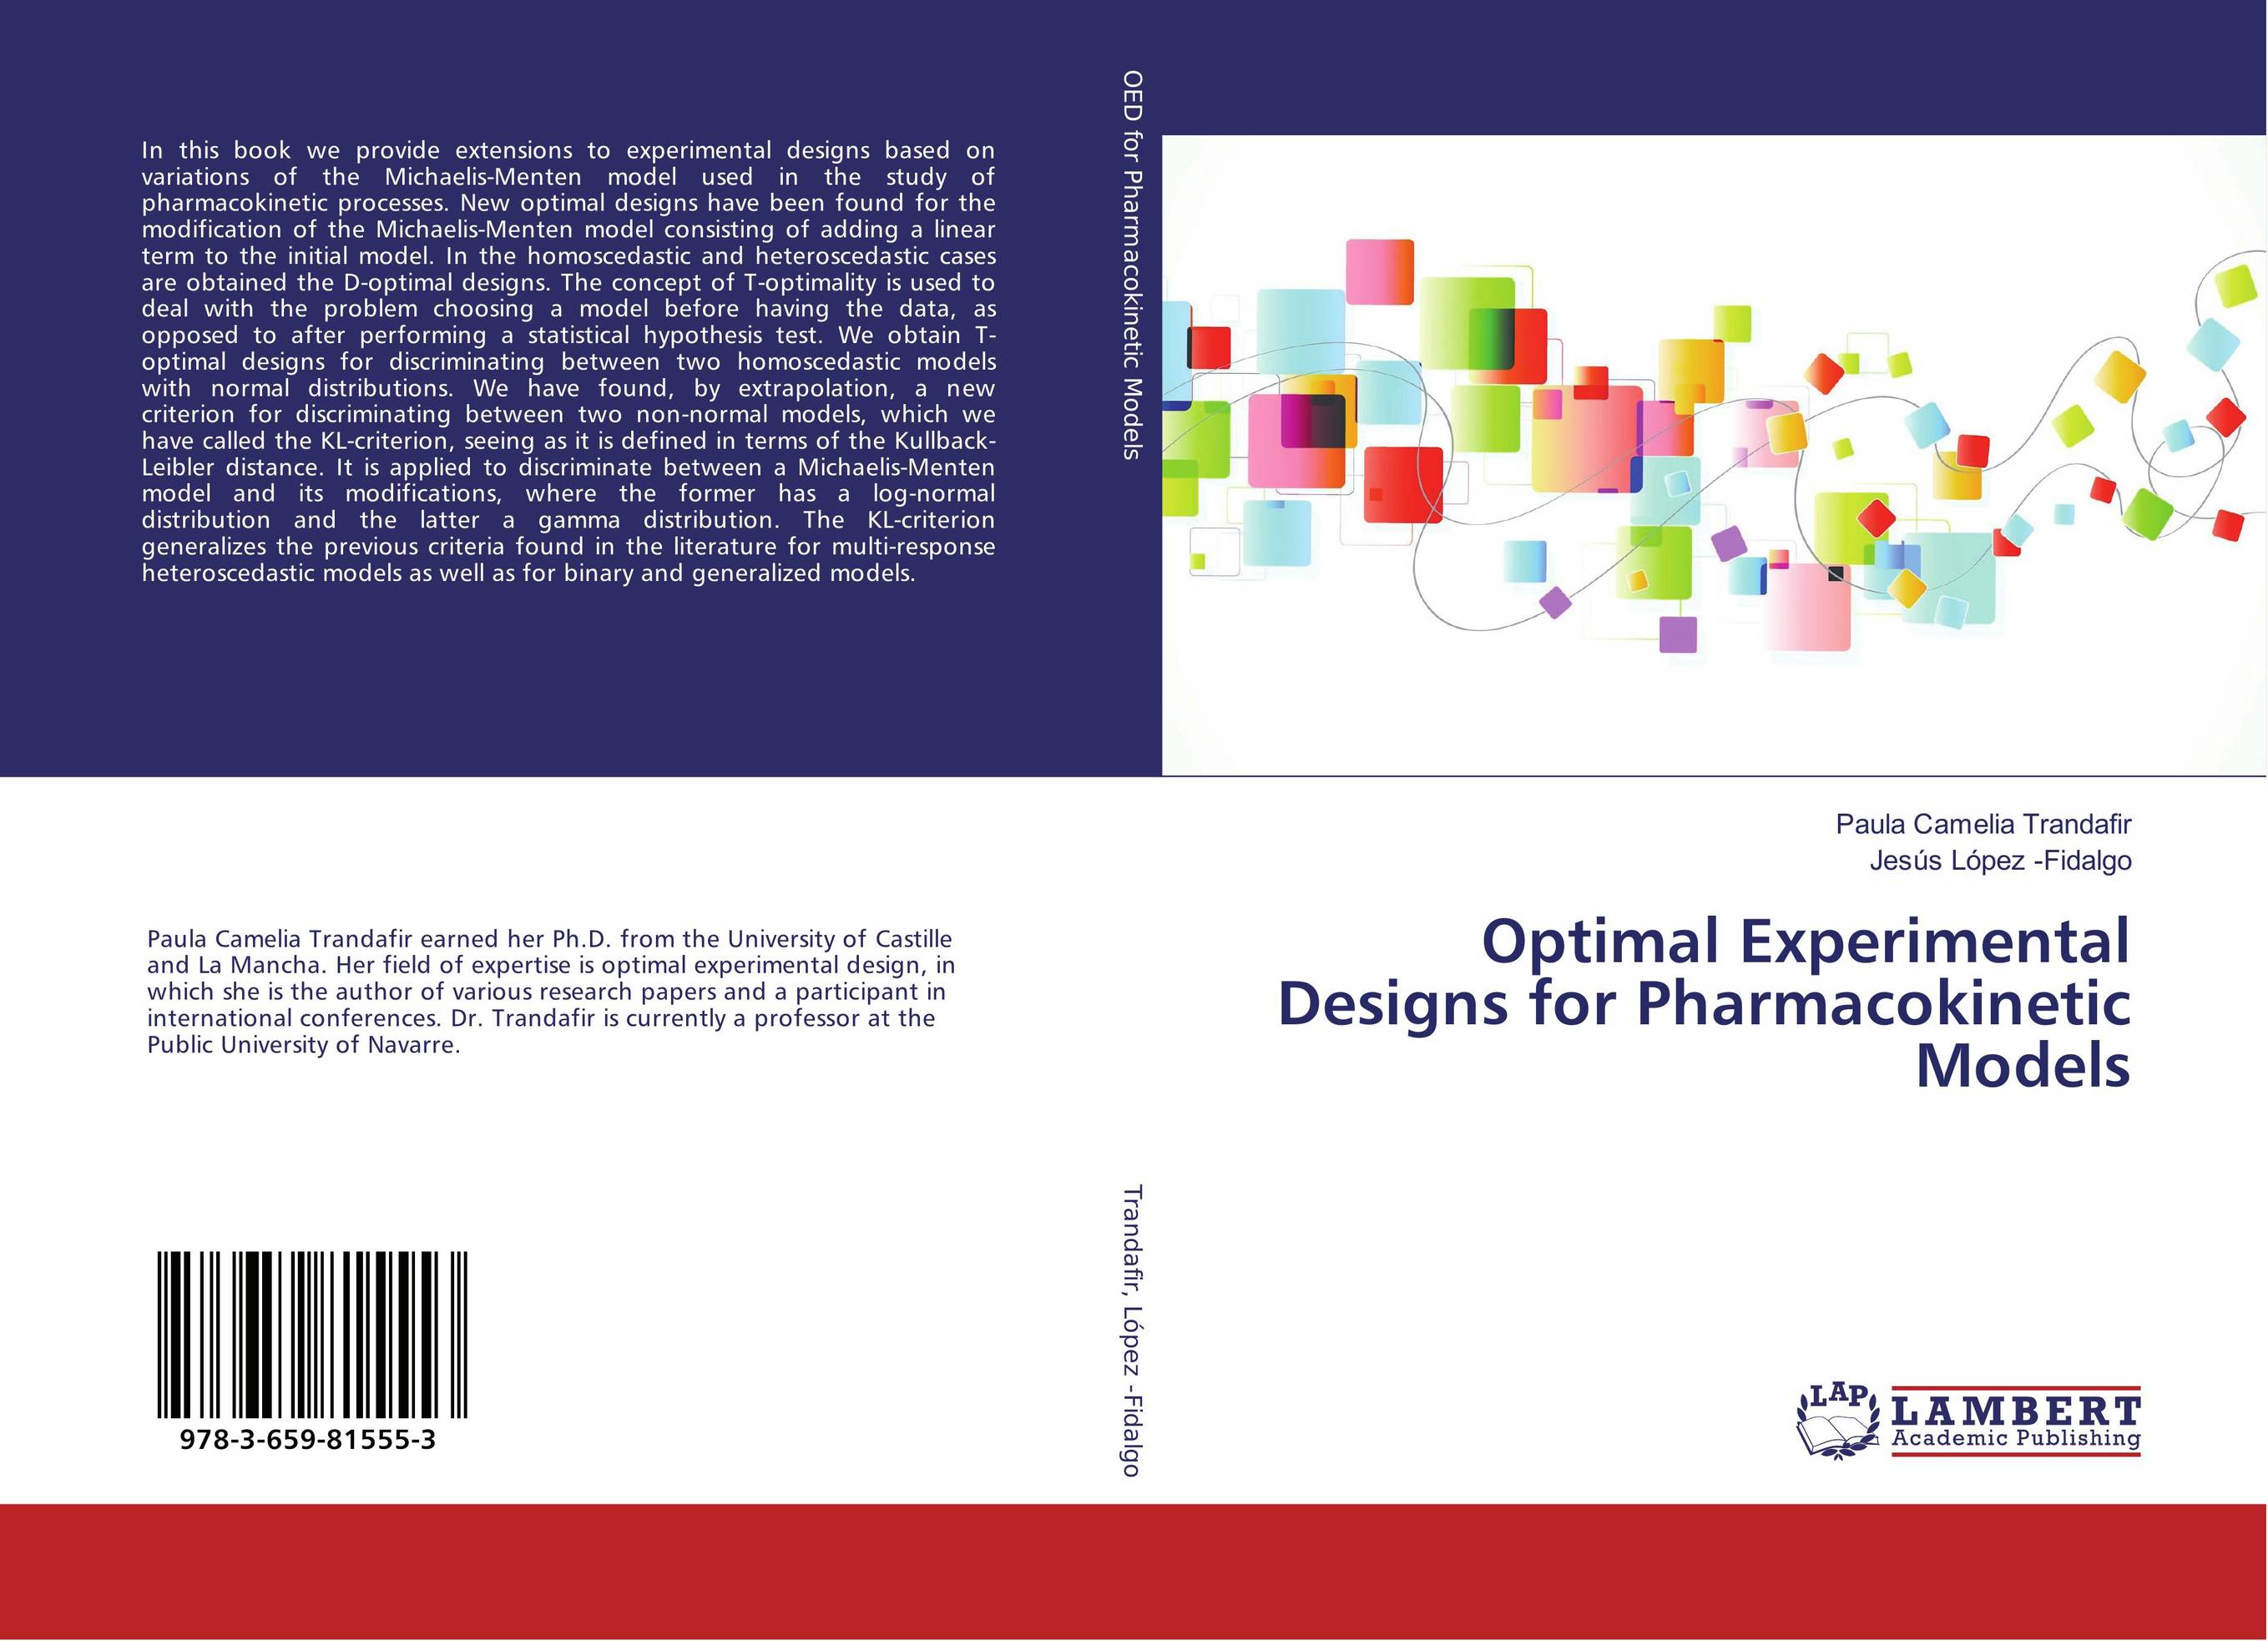 Optimal Experimental Designs for Pharmacokinetic Models